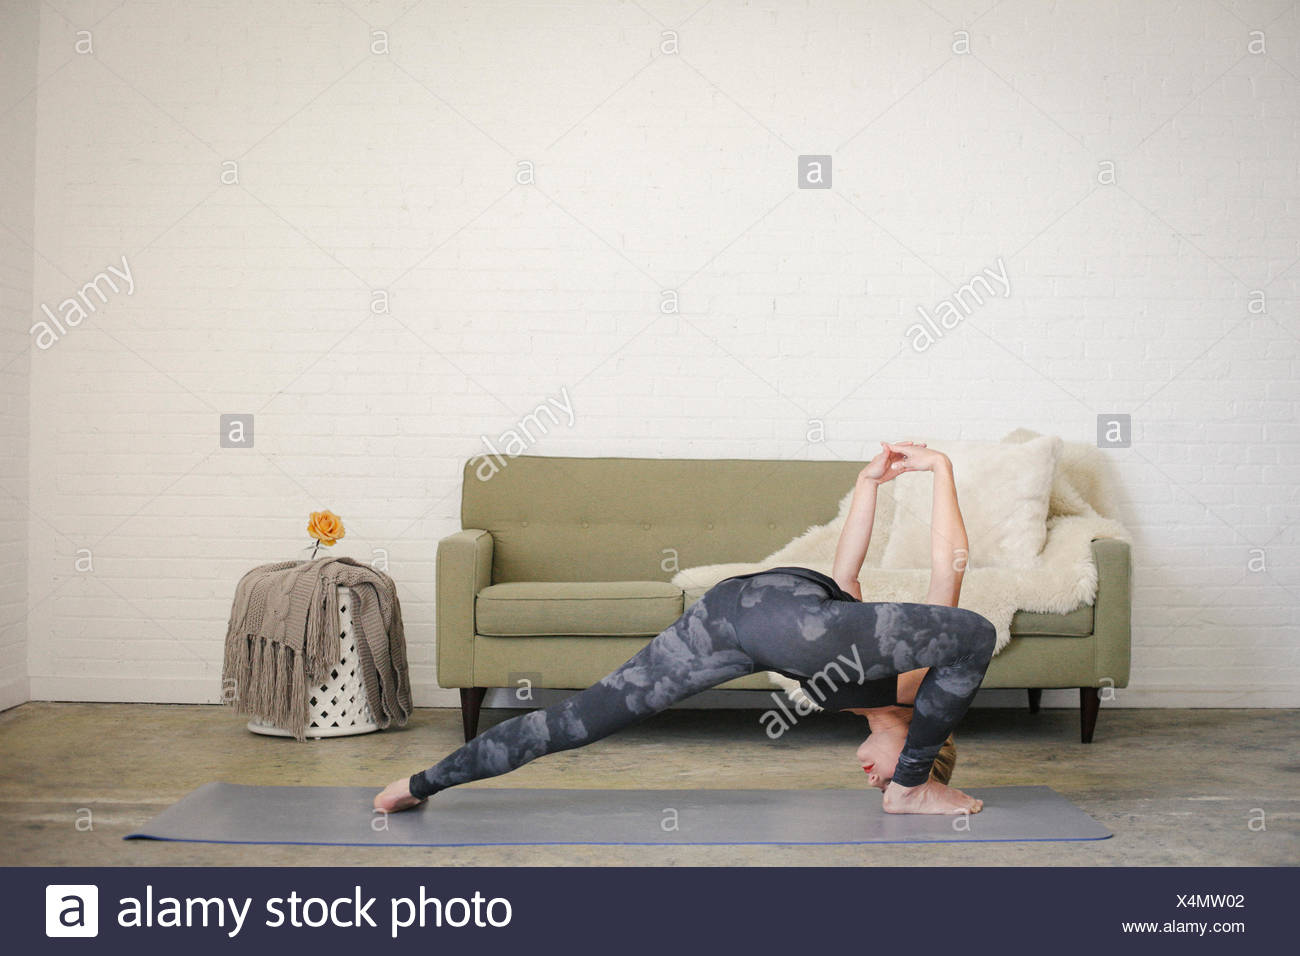 A blonde woman in a black leotard and leggings, standing on a yoga mat in a room, doing yoga, her legs apart and arms raised. - Stock Image